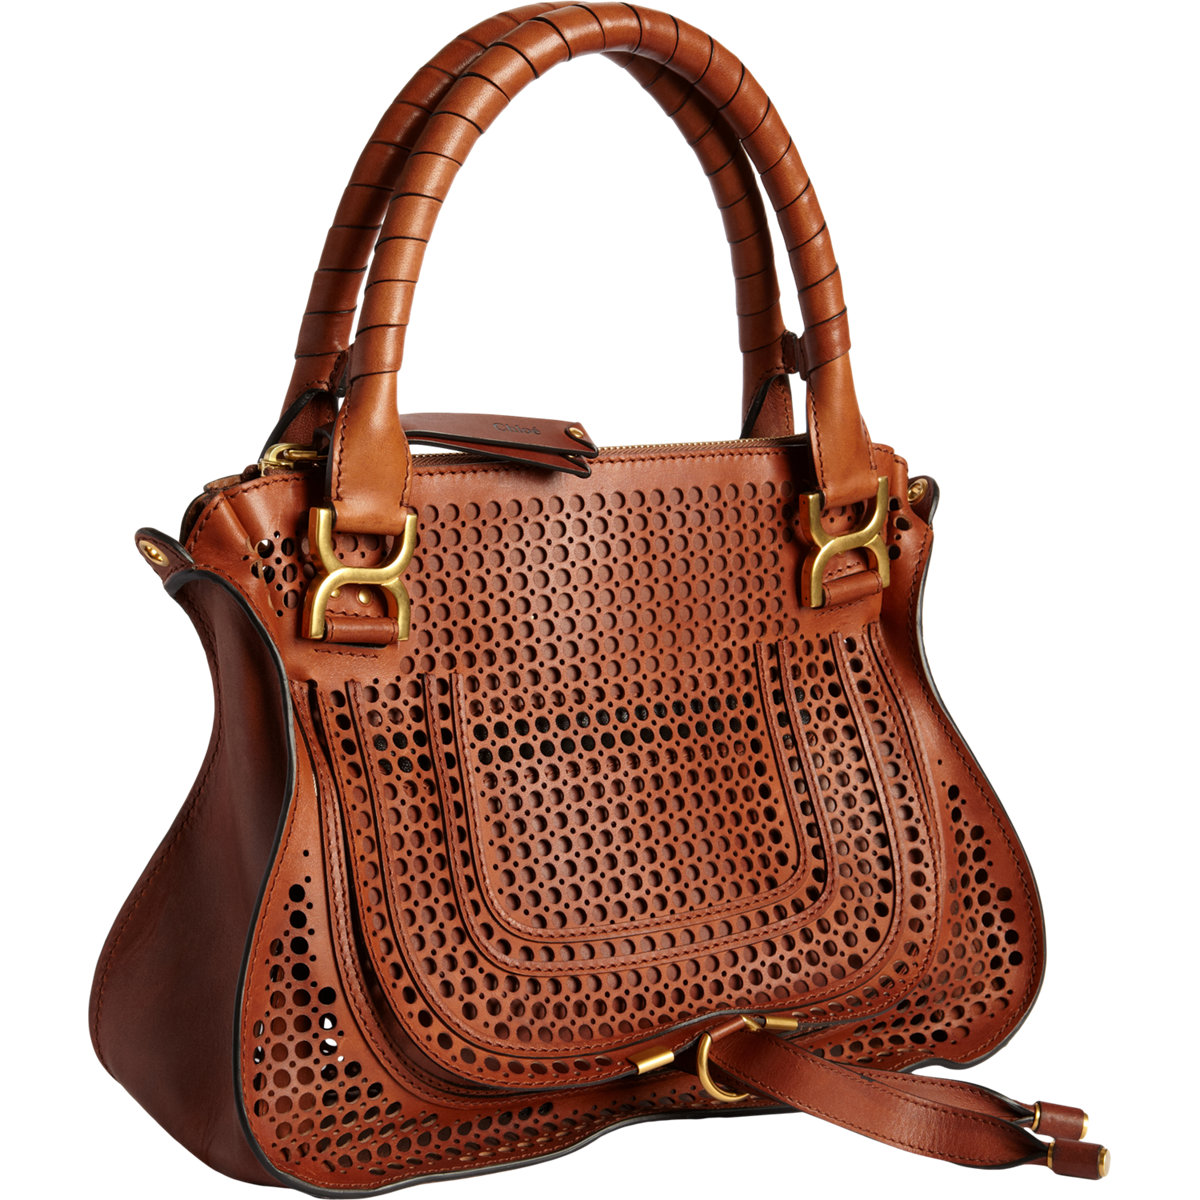 ed19ee3b615 Chloé Perforated Marcie Medium Satchel with Strap in Brown - Lyst